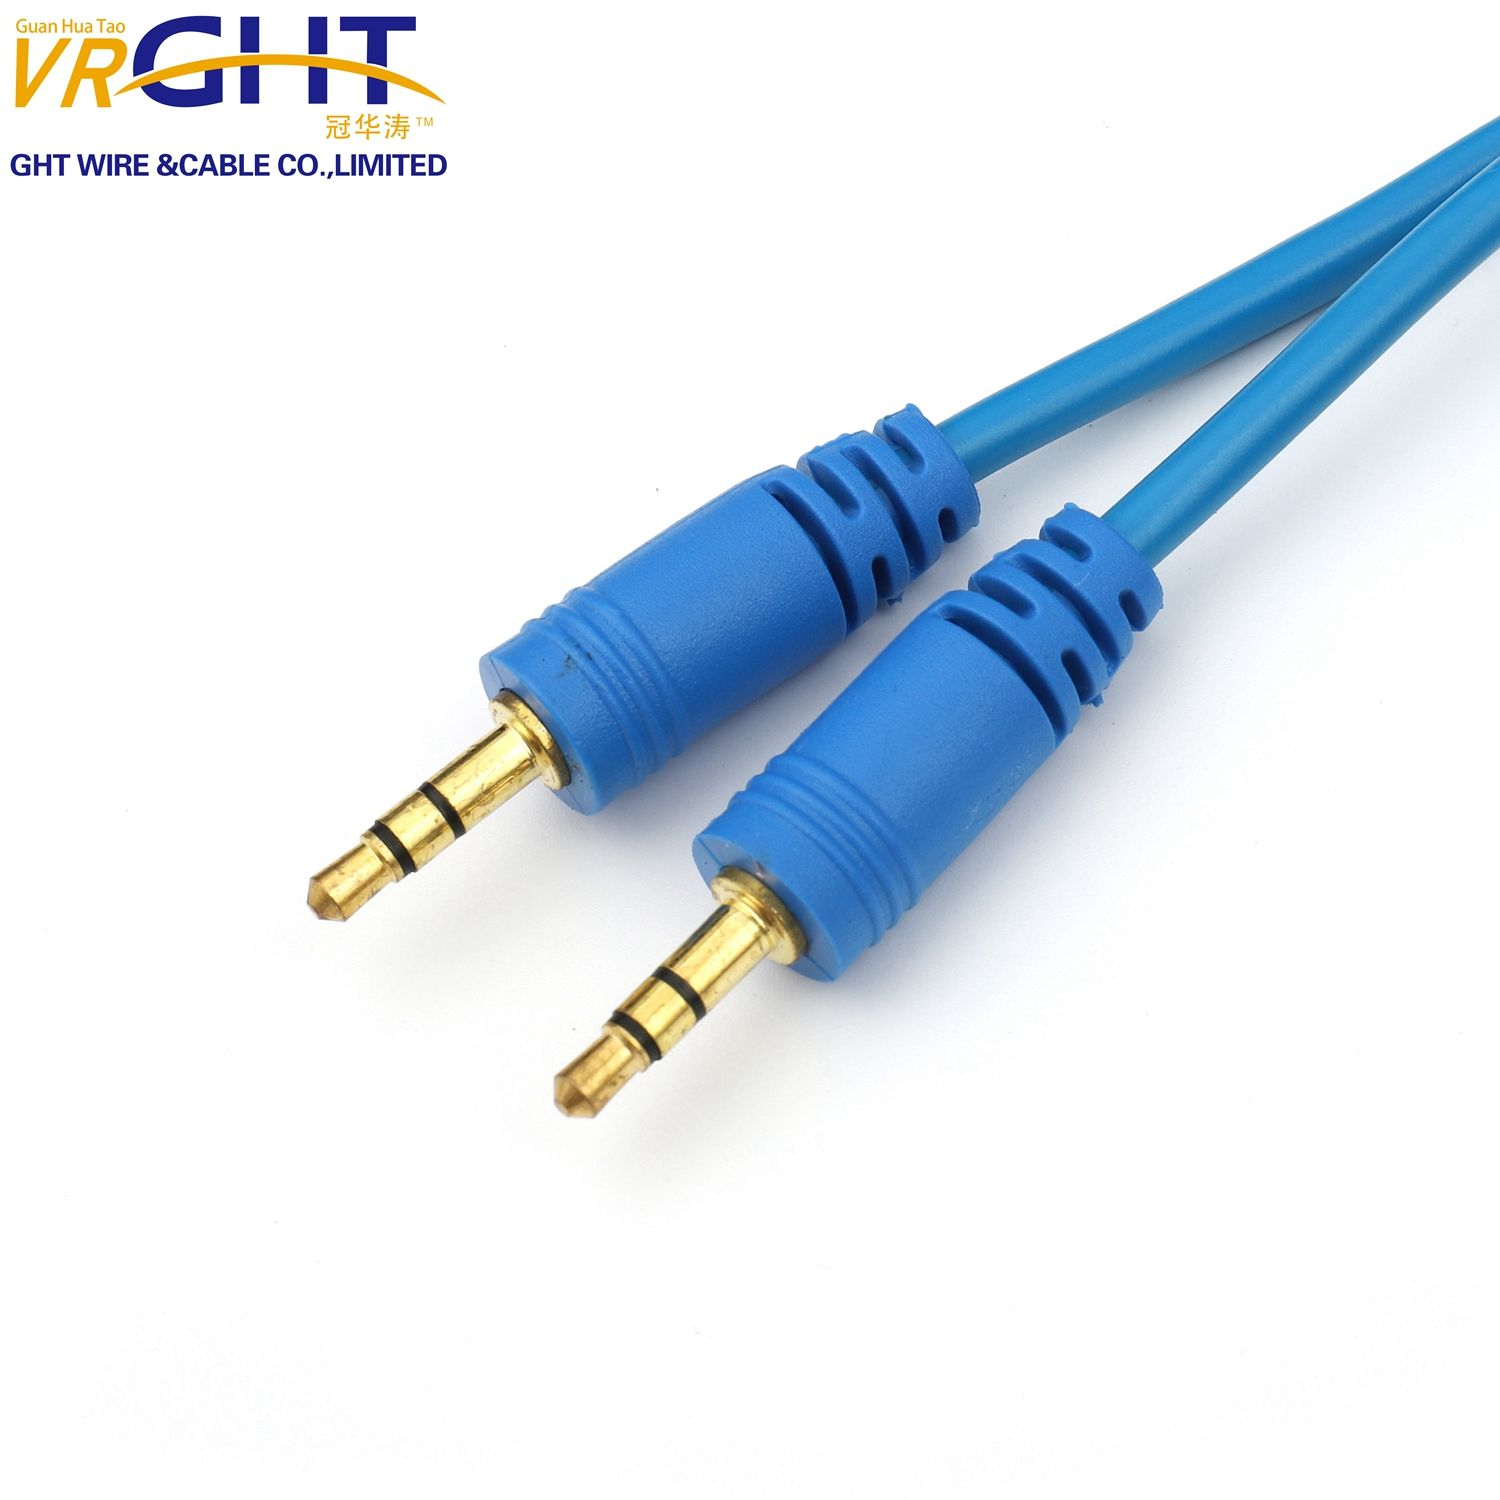 3.5mm Stereo Car Auxiliary Audio Cable Male To Male for Smart Phone aux 3.5mm male audio Cable